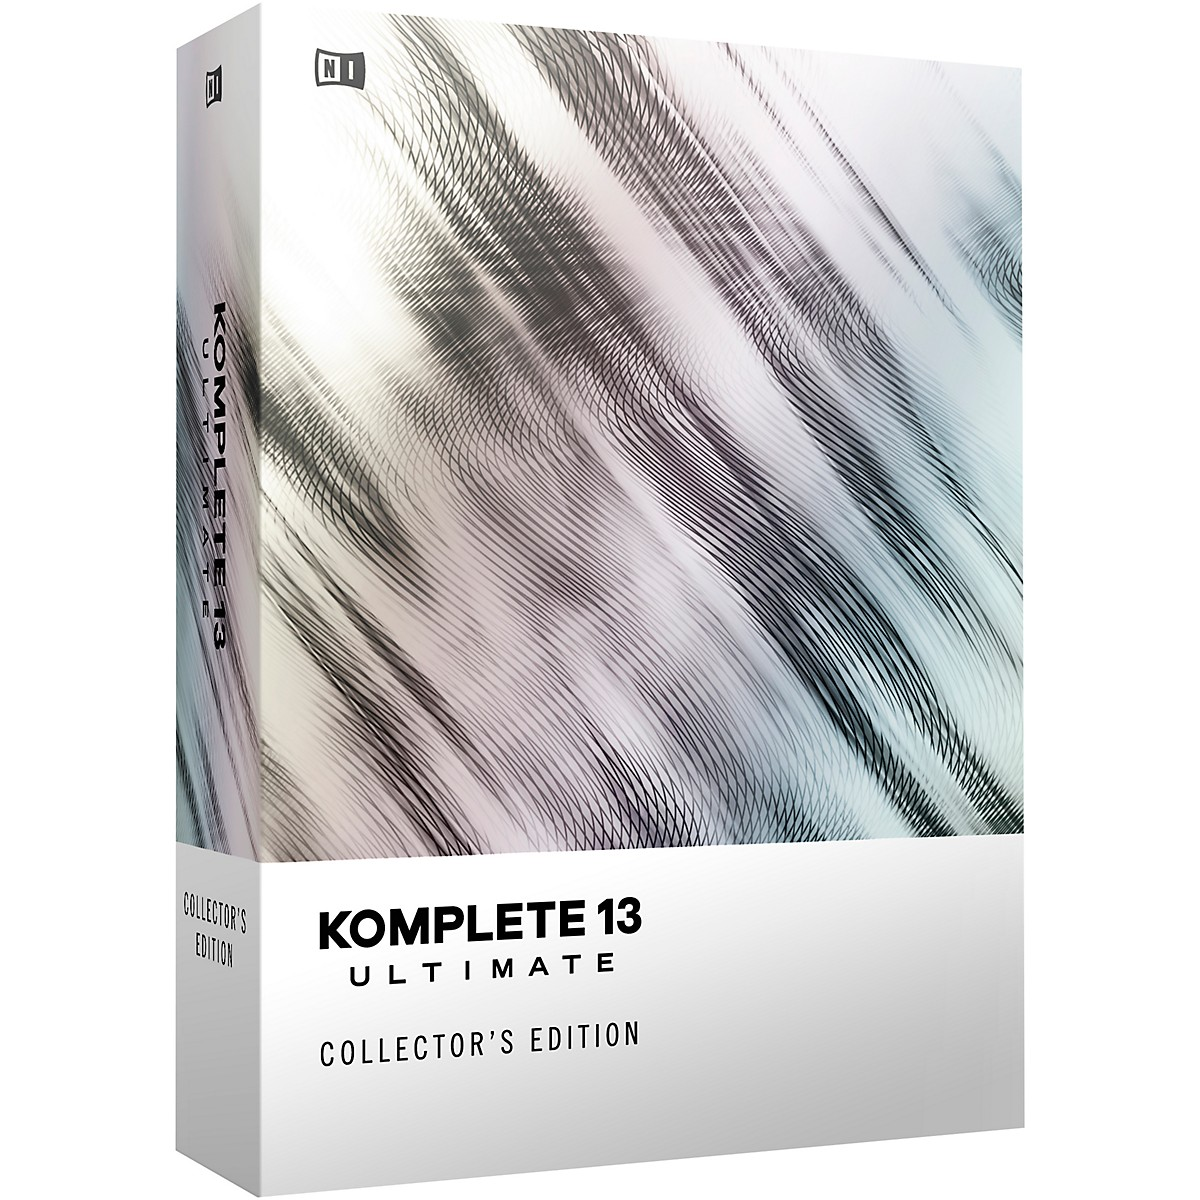 Native Instruments KOMPLETE 13 ULTIMATE Collector's Edition Upgrade for KOMPLETE 8-12